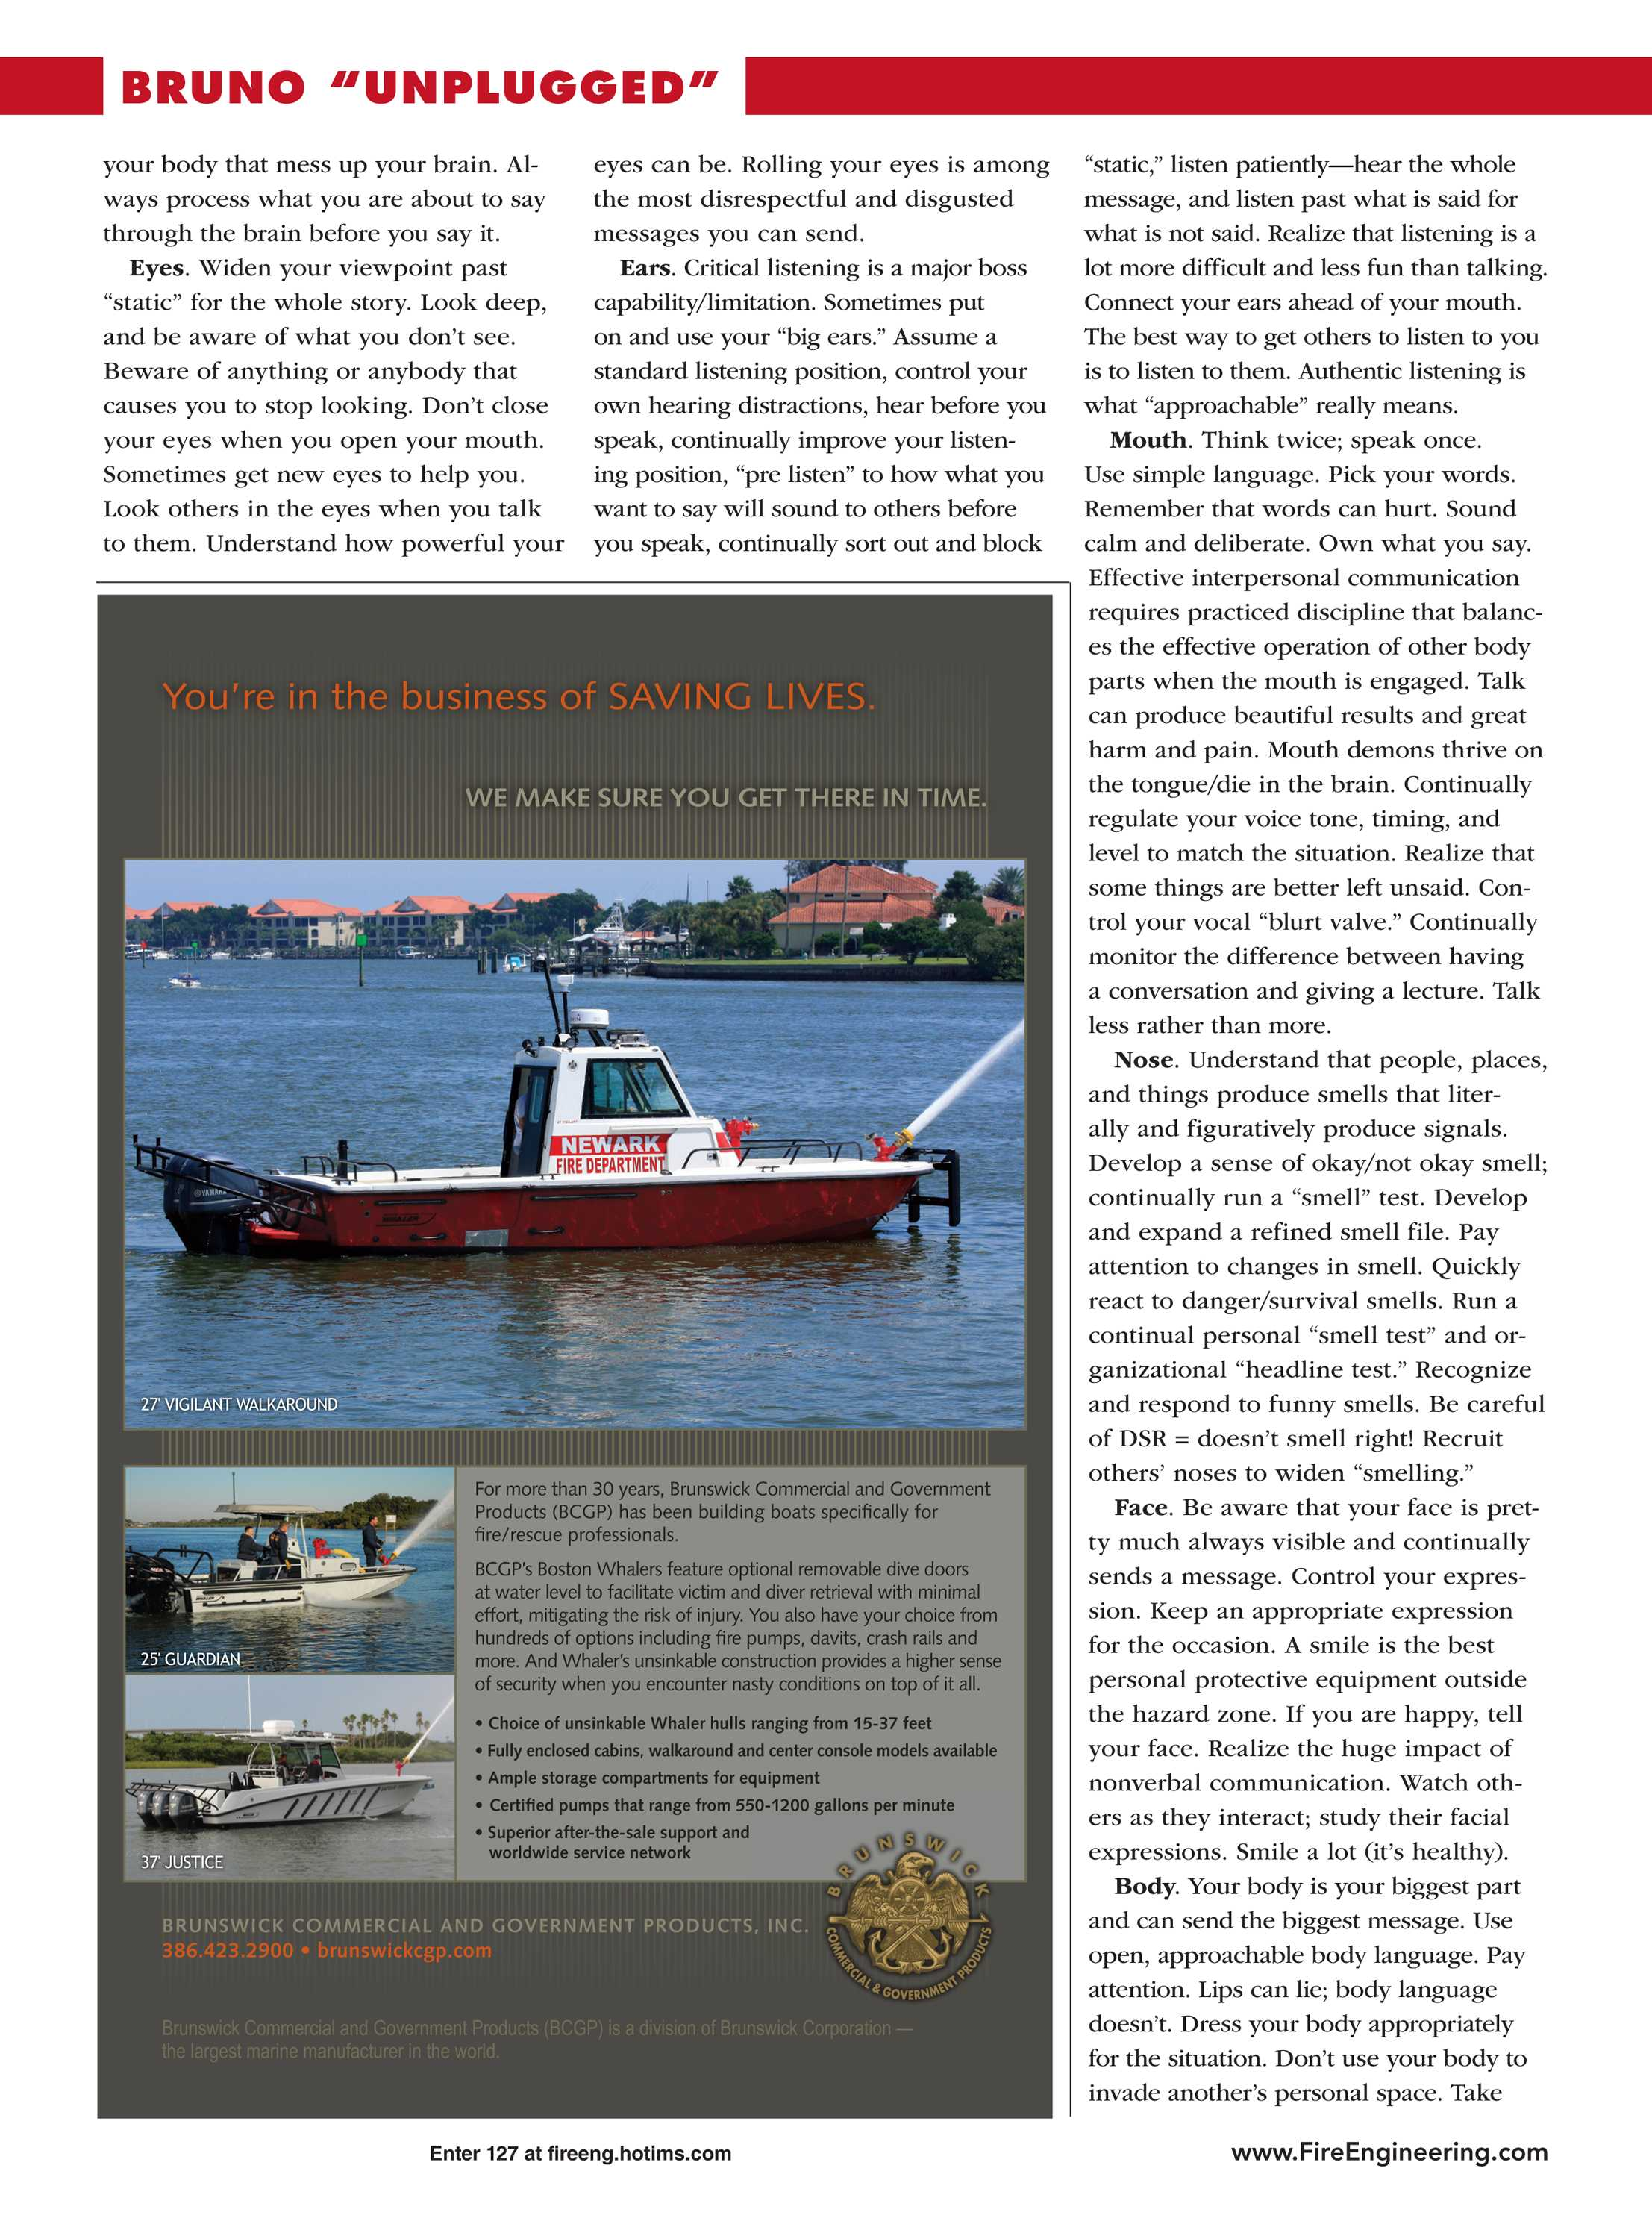 Fire Engineering - February 2014 - page 42